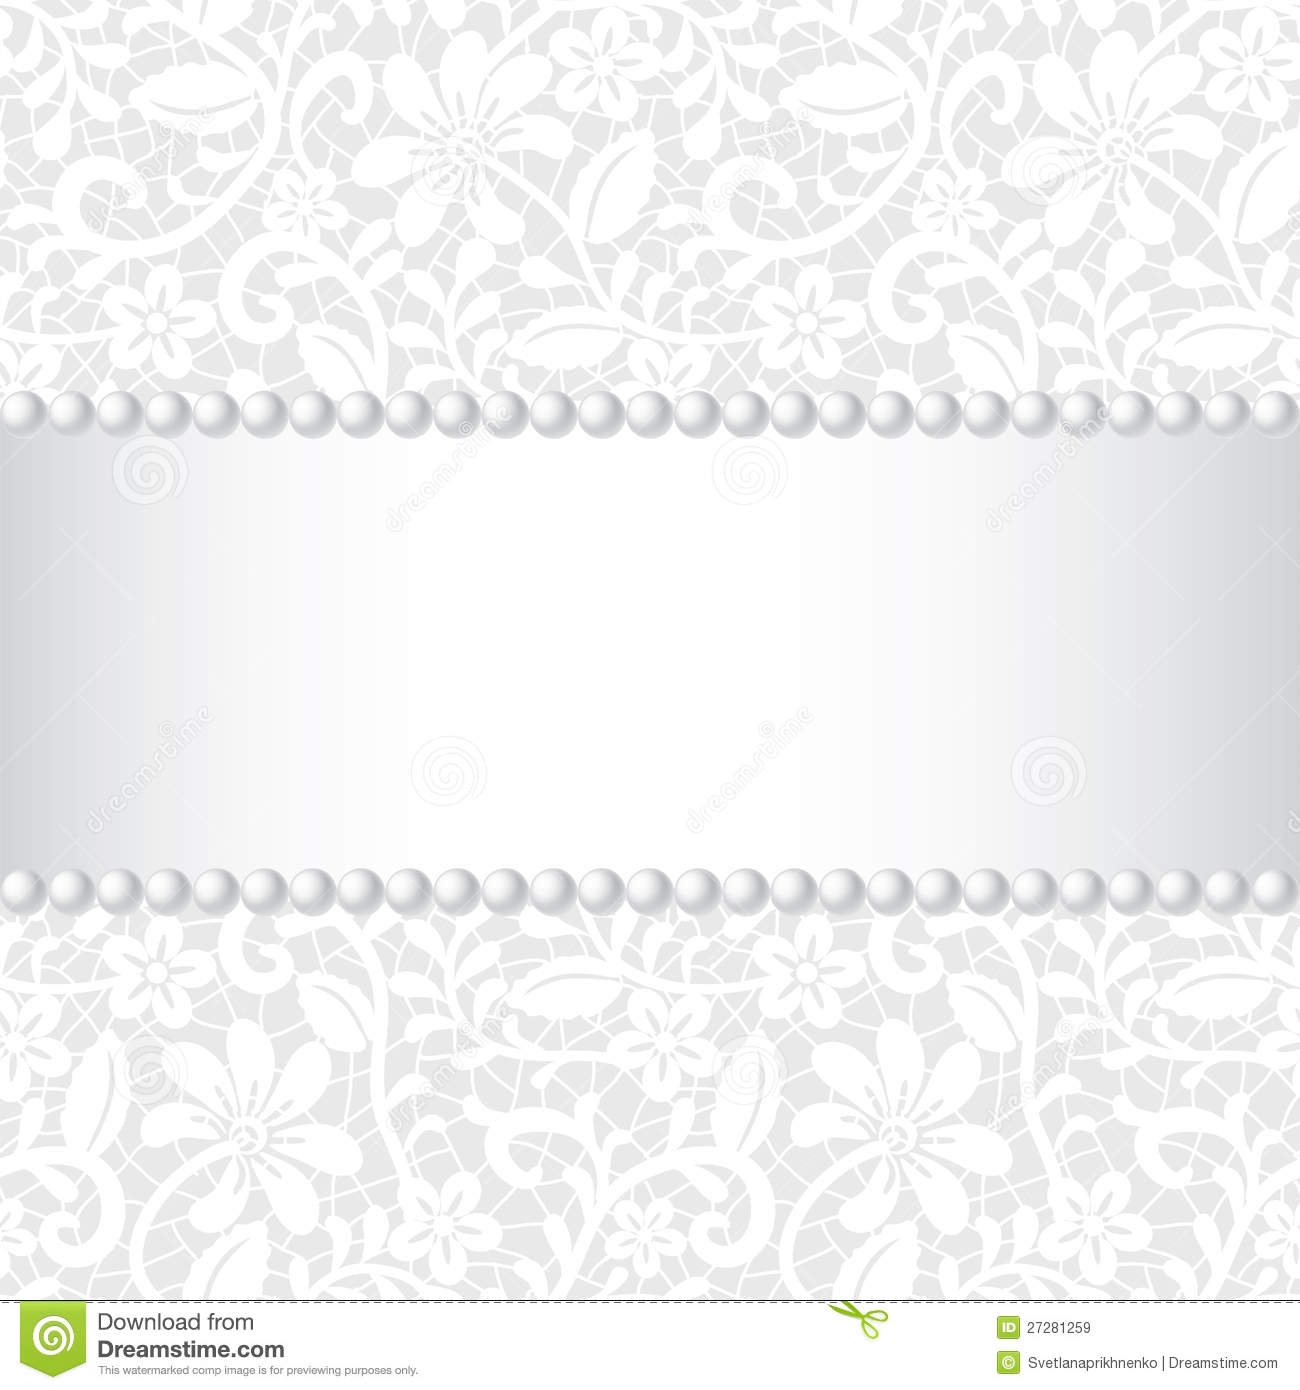 Pearls And Lace Clipart Free